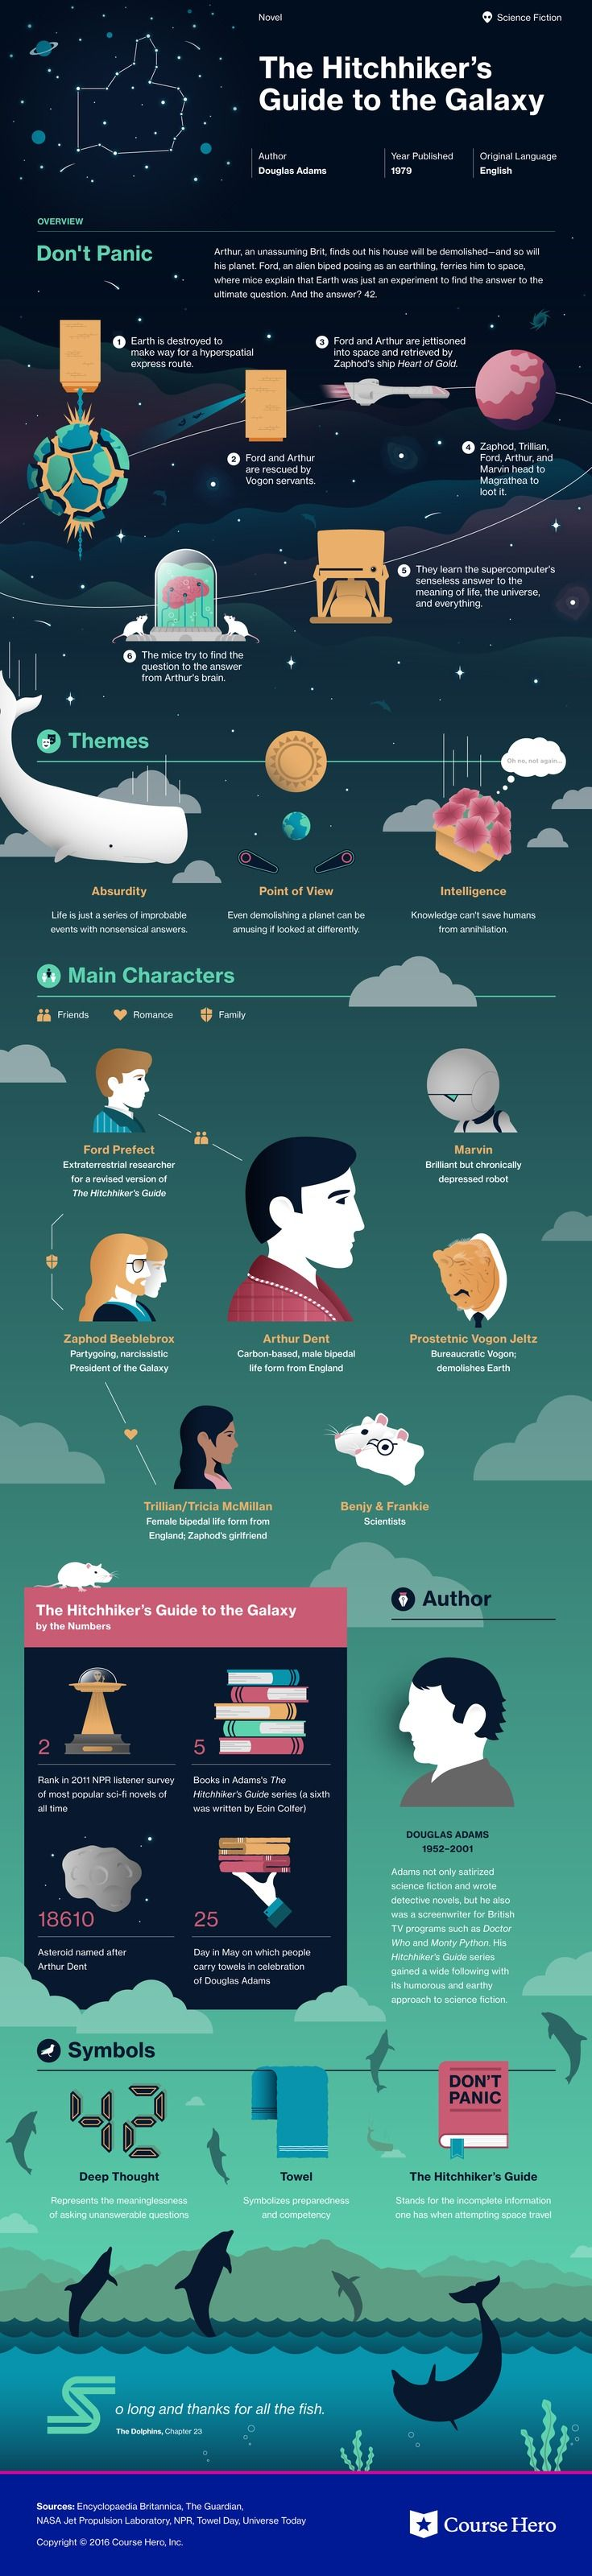 This @CourseHero infographic on The Hitchhiker's Guide to the Galaxy is both visually stunning and informative!